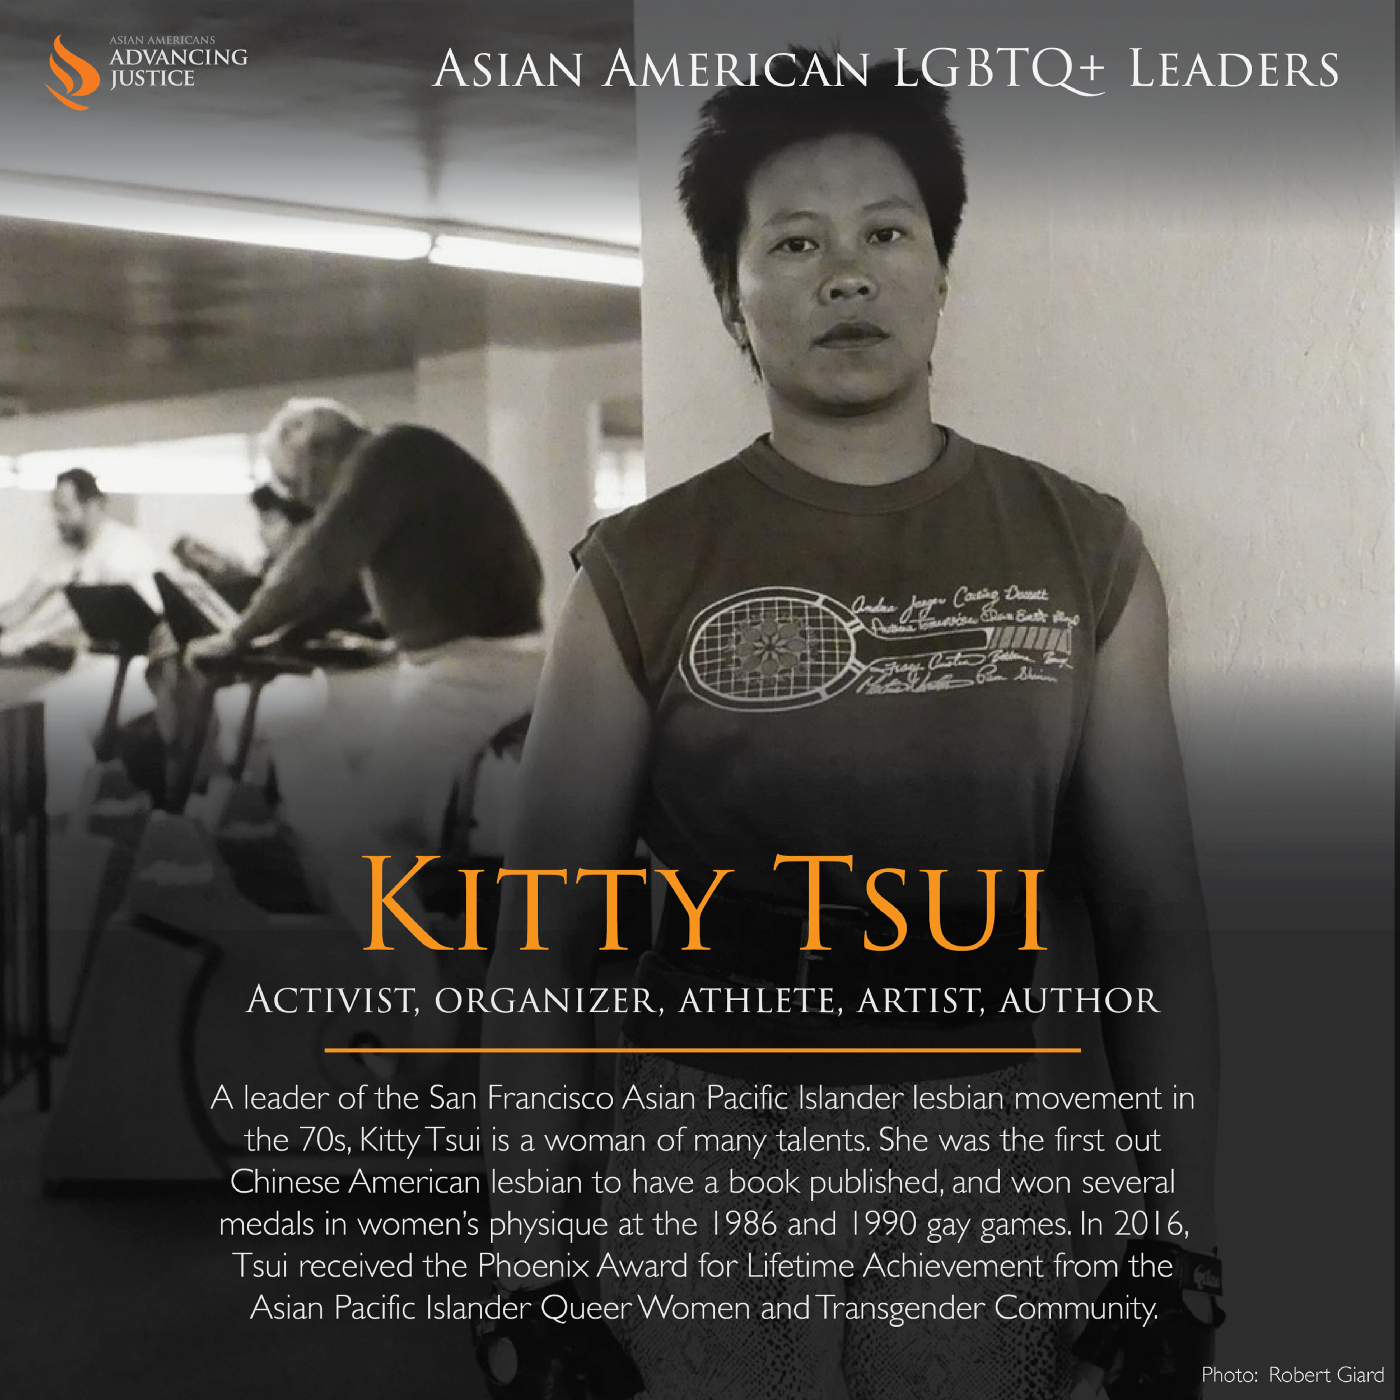 B&W photo Tsui at the gym. The text: Kitty Tsui, activist, organizer, athlete, artist, author. A leader of the San Francisco Asian Pacific Islander lesbian movement in the 70s, Kitty Tsui is a woman of many talents. She was the first out Chinese American lesbian to have a book published, and won several medals in women's physique at the 1986 and 1990 gay games. In 2016, Tsui received the Phoenix Award for Lifetime Achievement from the Asian Pacific Islander Queer Women and Transgender Community.